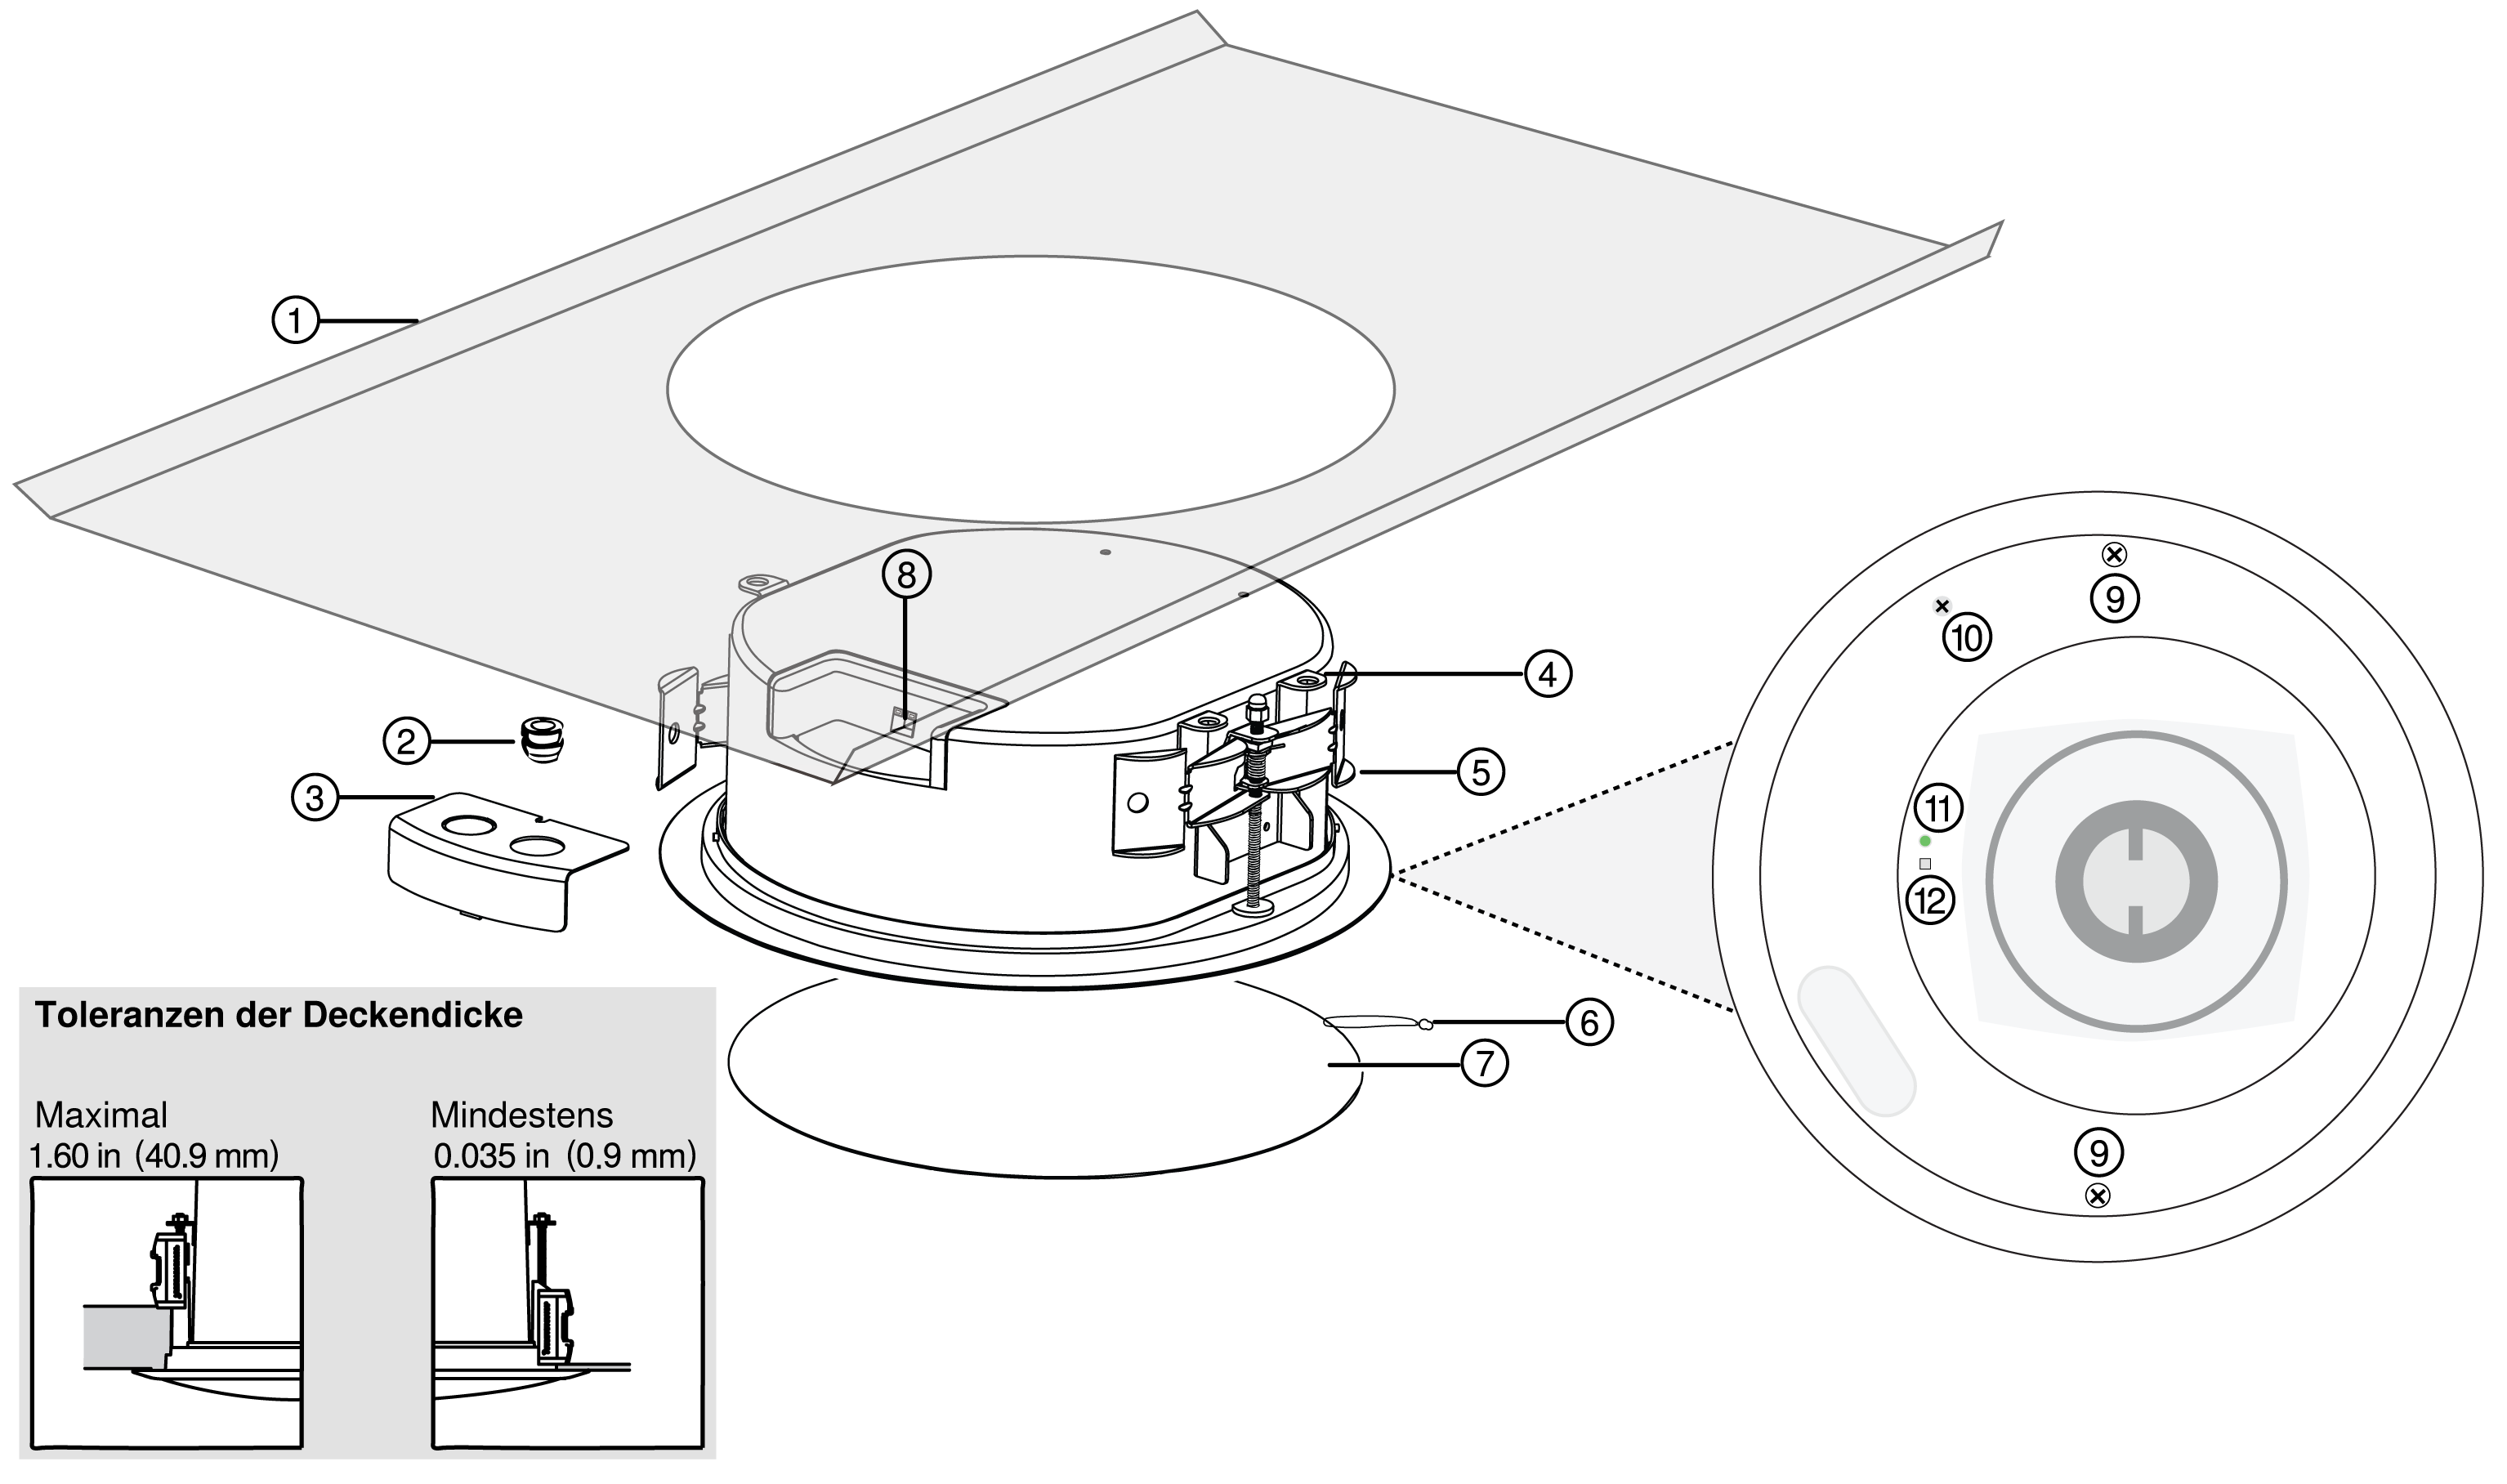 Illustration showing the different parts of the MXN5-C loudspeaker and tile bridge.